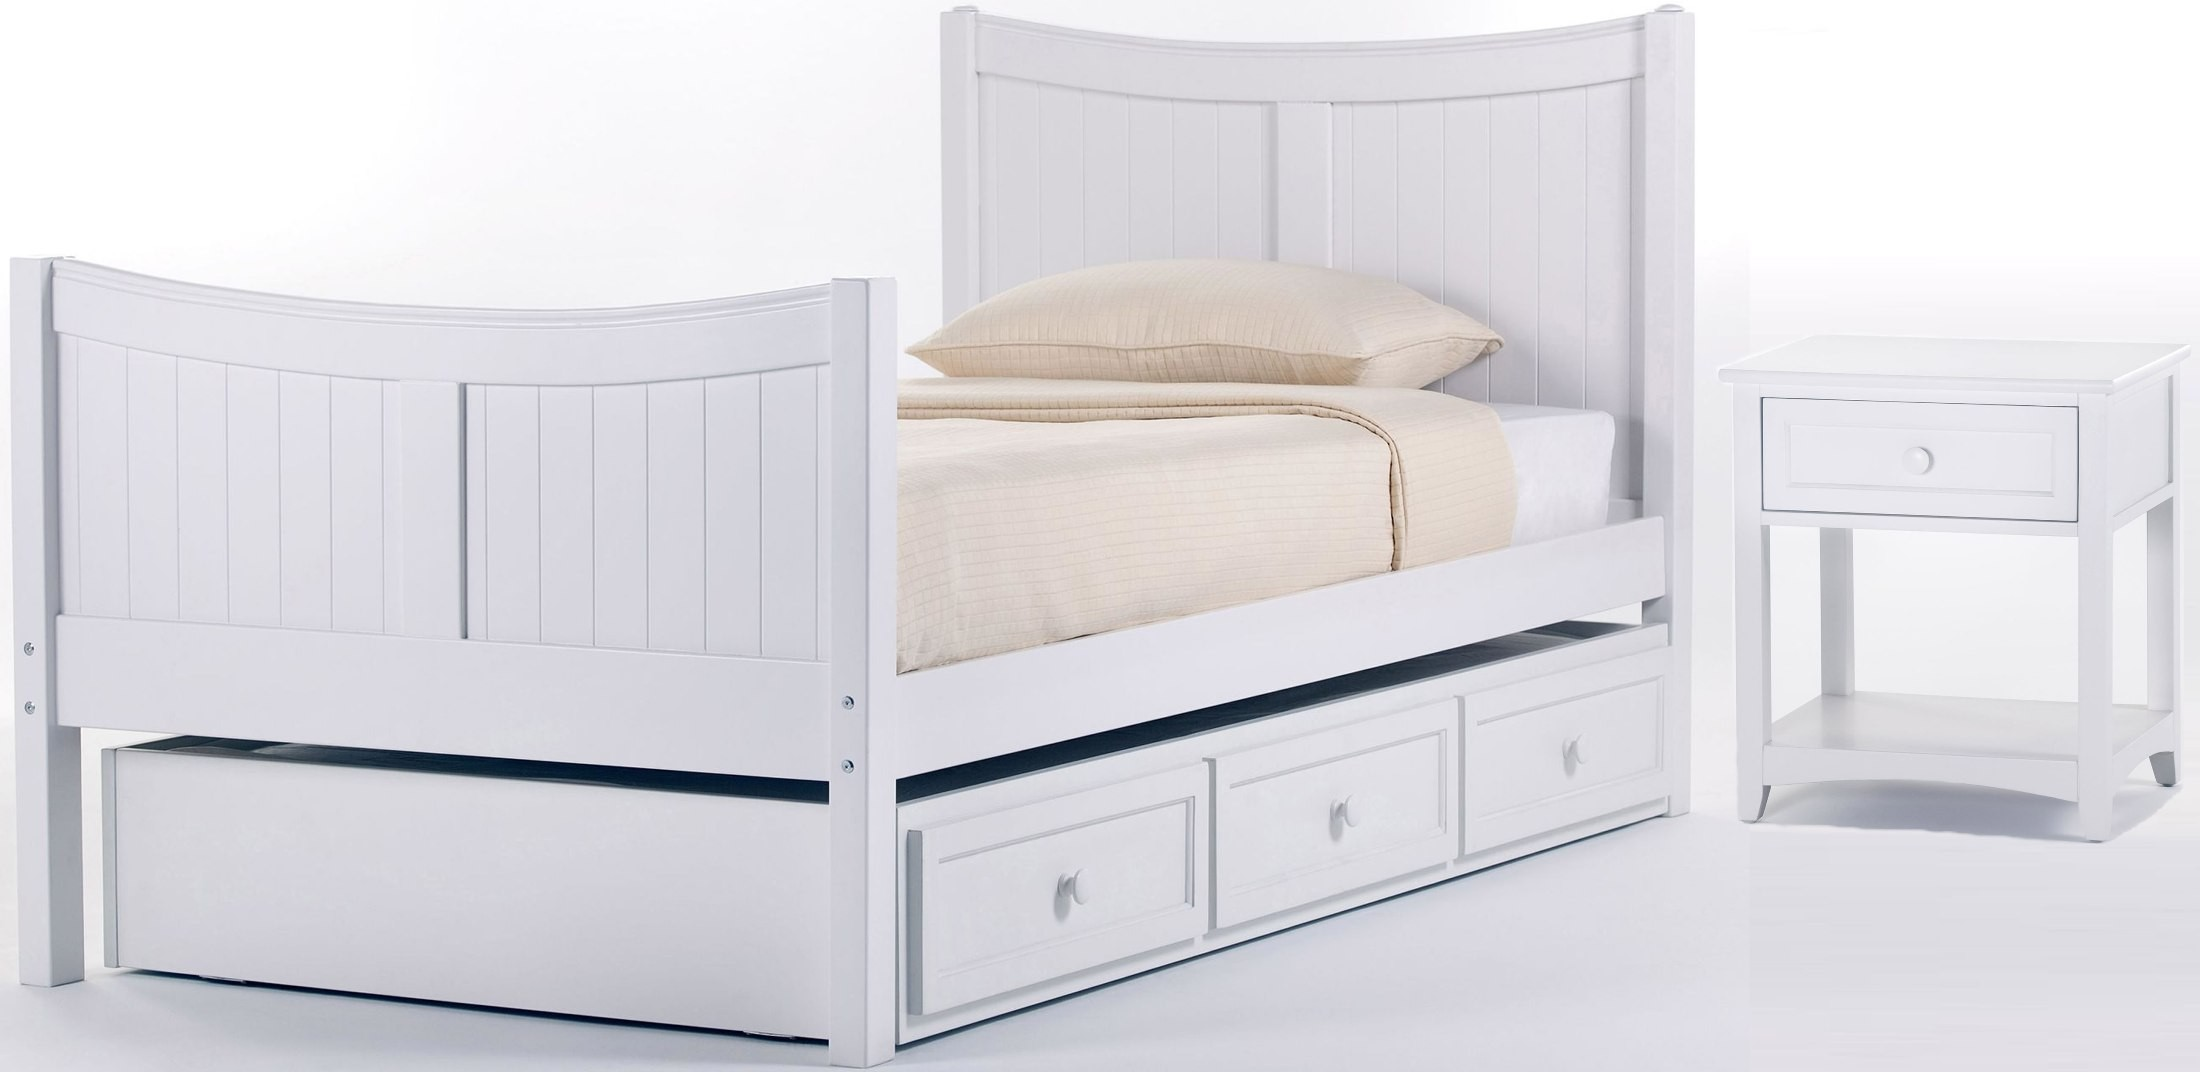 White trundle bedroom set 28 images furniture white girls bedroom set featured full size White twin trundle bedroom set